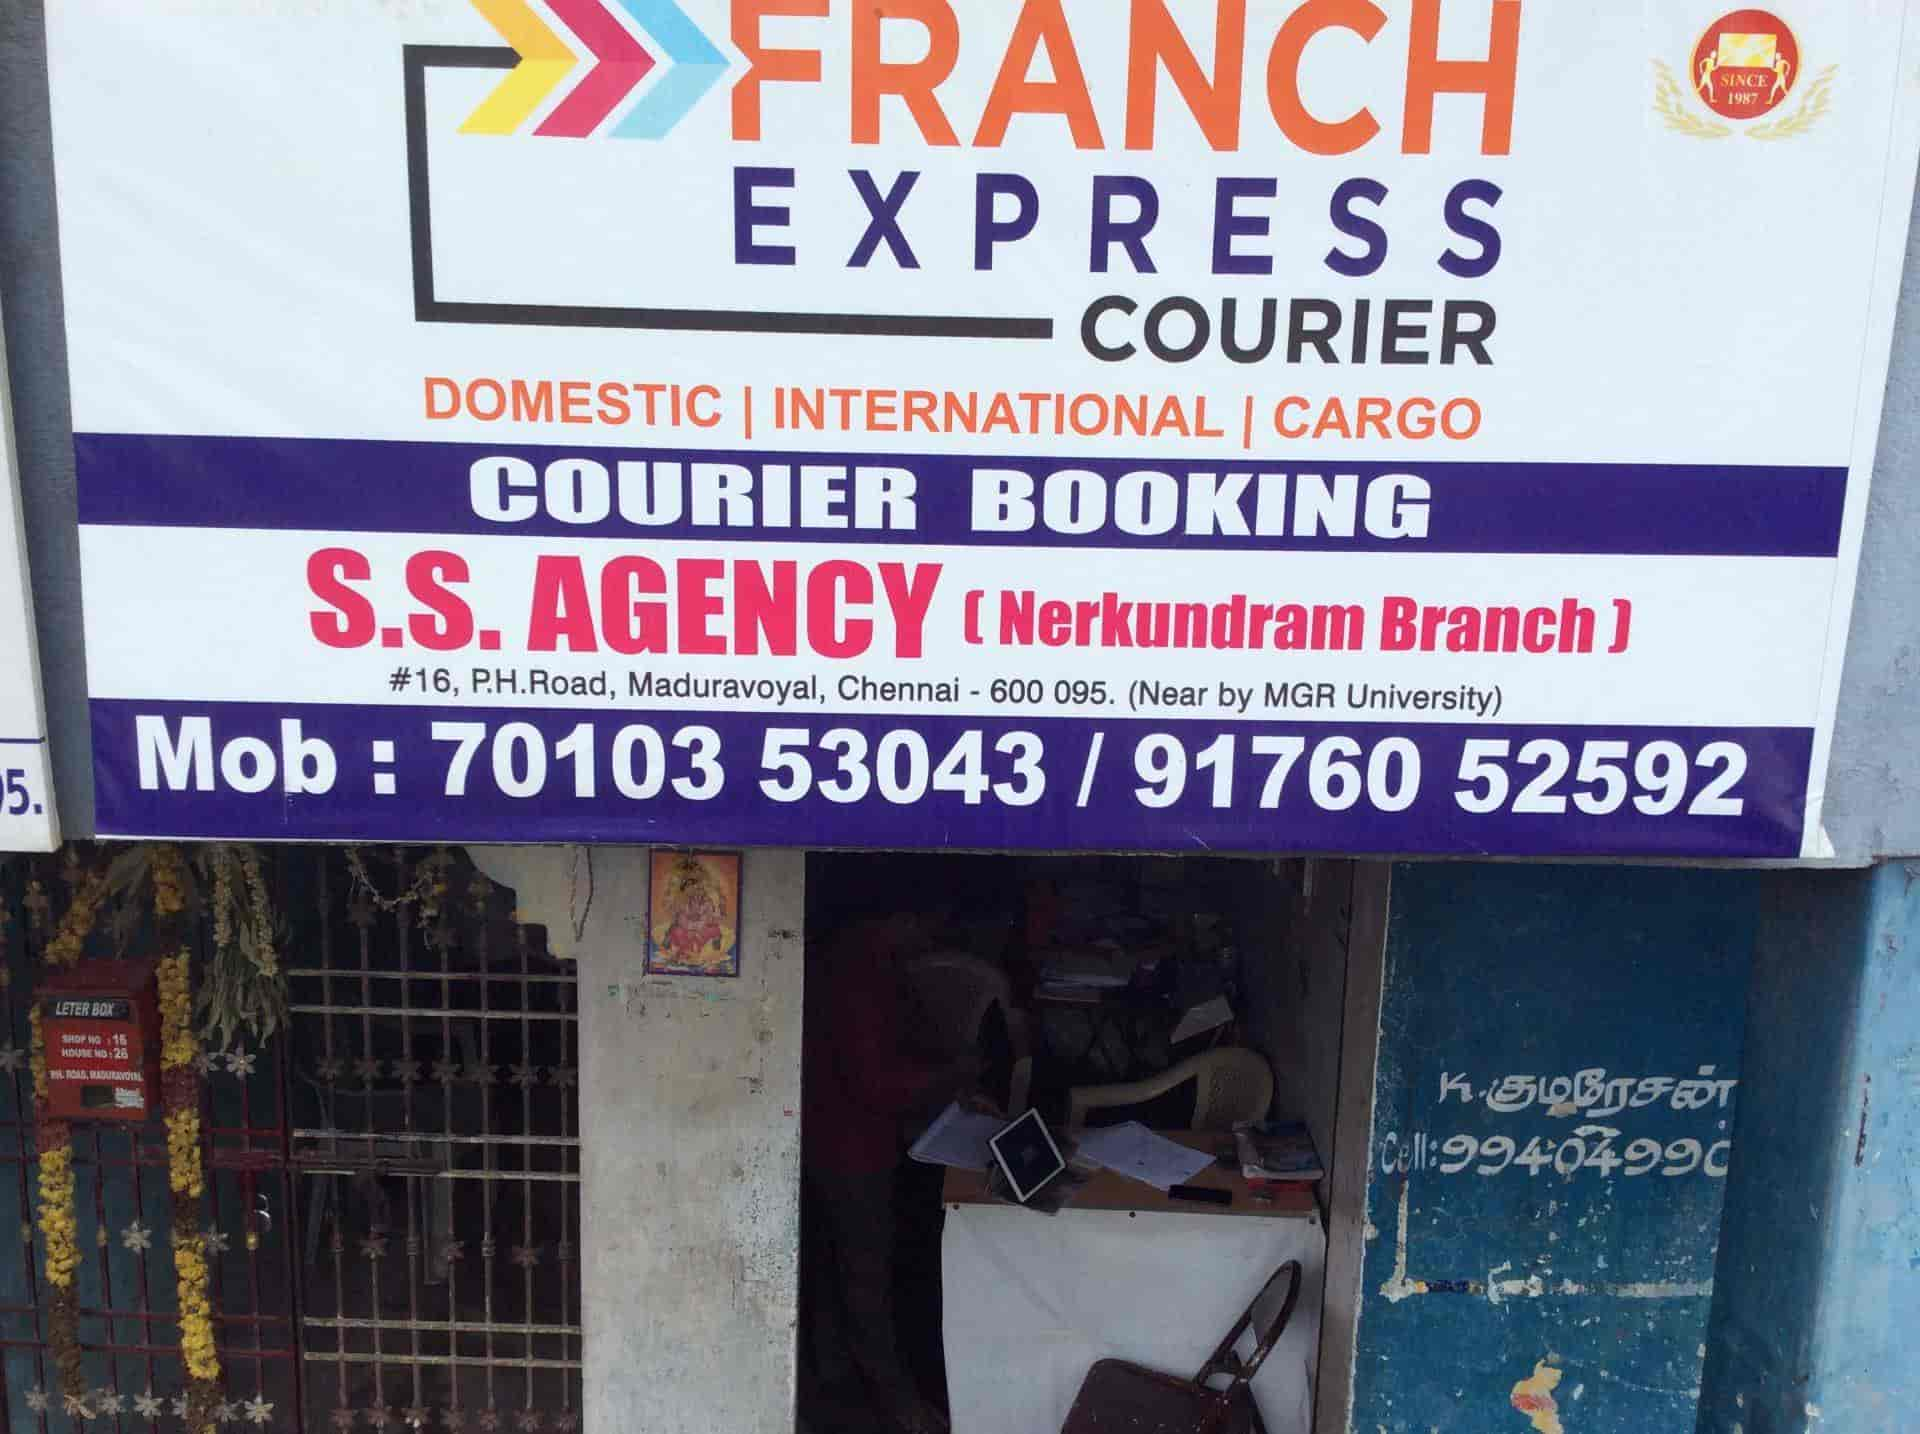 Franch Express Network, Maduravoyal - Courier Services in